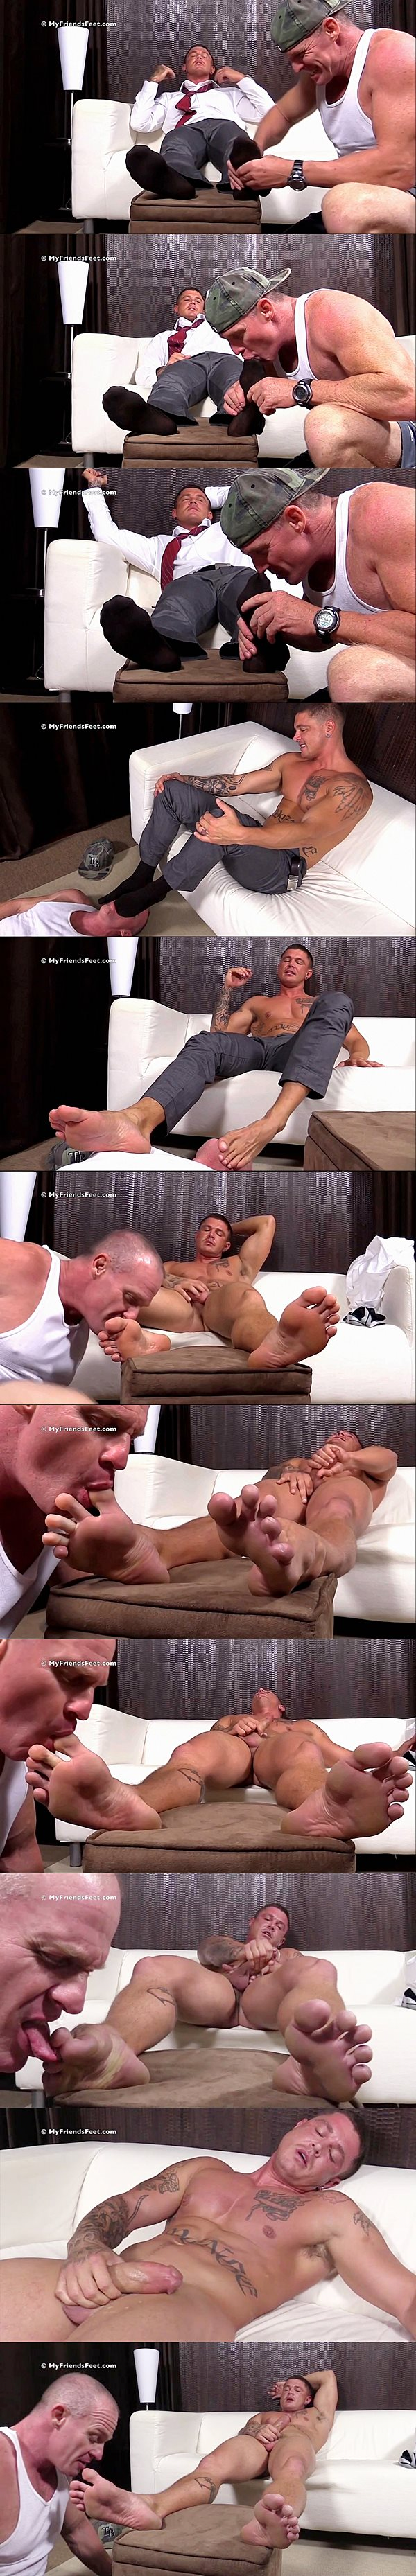 Sexy muscle jock Sebastian Young cums while getting his size 12 feet worshiped at Myfriendsfeet 02